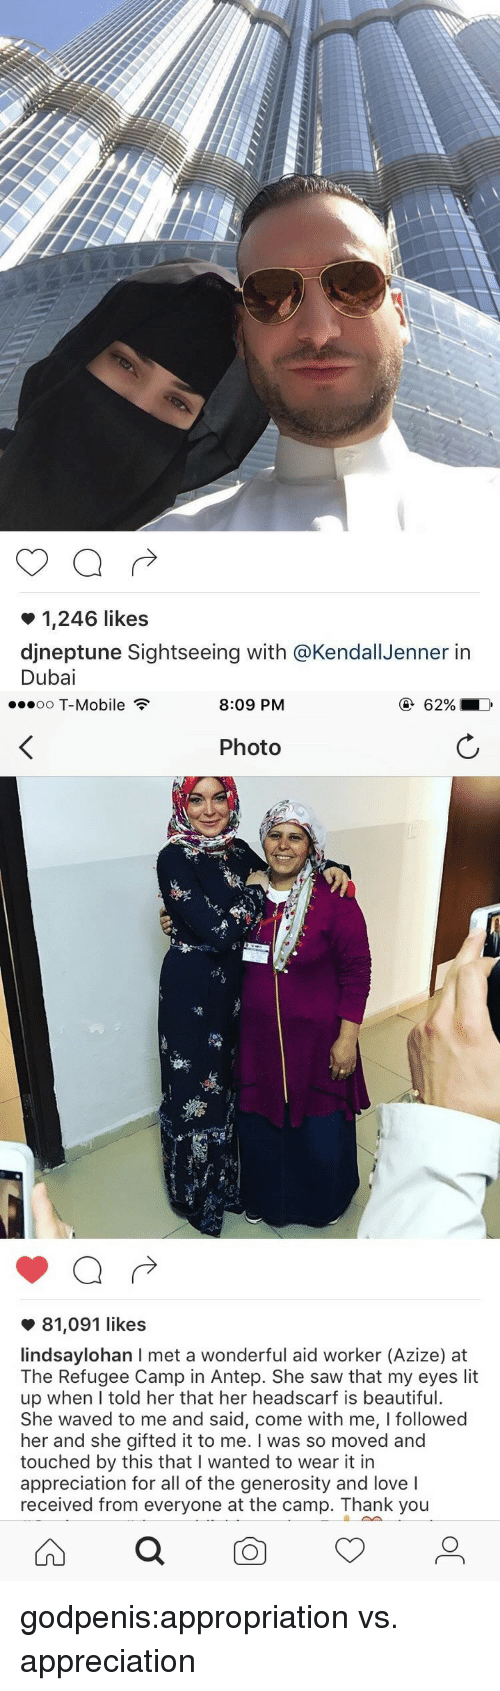 Lit Up: 1,246 likes  djneptune Sightseeing with @KendallJenner itn  Dubai   oo T-Mobile  8:09 PM  Photo  81,091 likes  lindsaylohan I met a wonderful aid worker (Azize) at  The Refugee Camp in Antep. She saw that my eyes lit  up when lI told her that her headscarf is beautiful.  She waved to me and said, come with me, I followed  her and she gifted it to me. I was so moved and  touched by this that I wanted to wear it in  appreciation for all of the generosity and love I  received from everyone at the camp. Thank you godpenis:appropriation vs. appreciation